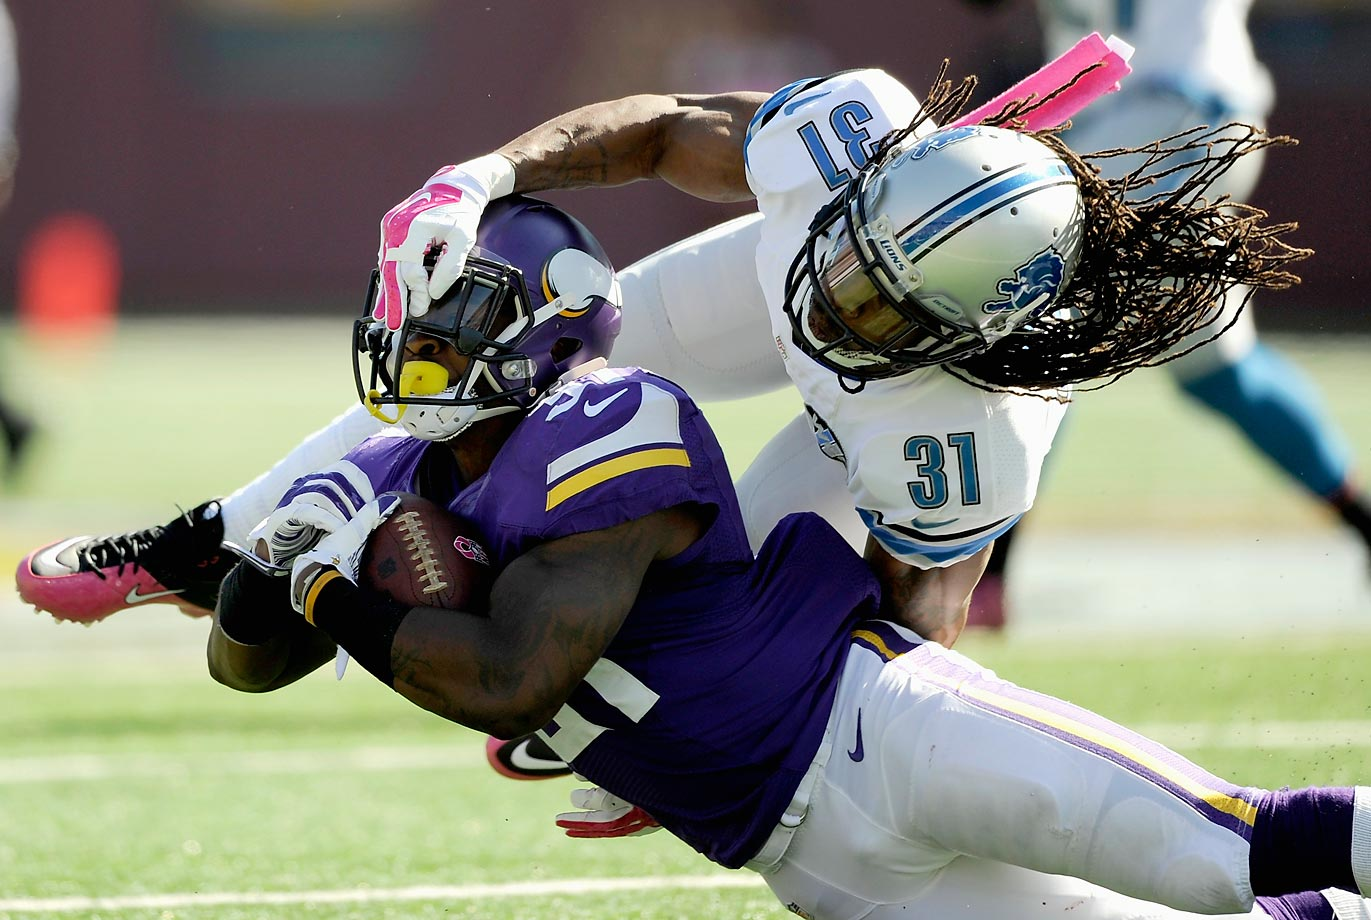 Detroit Lions cornerback Rashean Mathis tackles Minnesota Vikings running back Jerick McKinnon. The Lions won the division matchup 17-3.